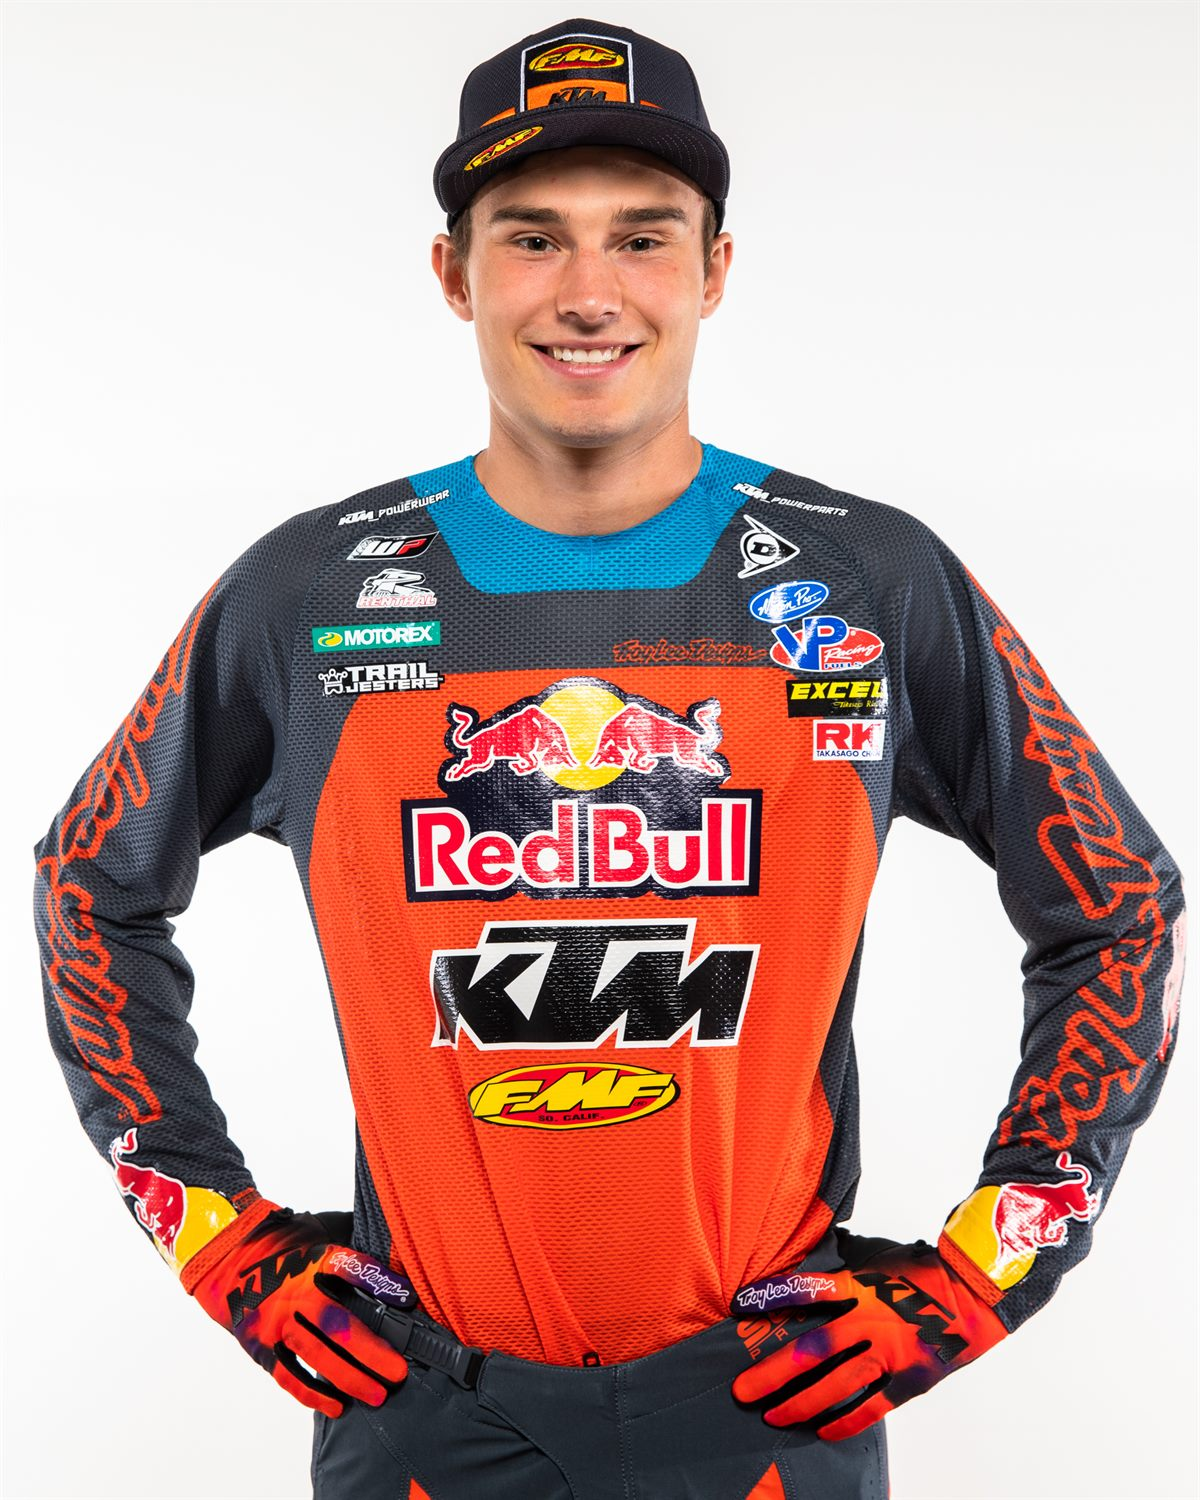 TRYSTAN HART FMF KTM FACTORY RACING TEAM